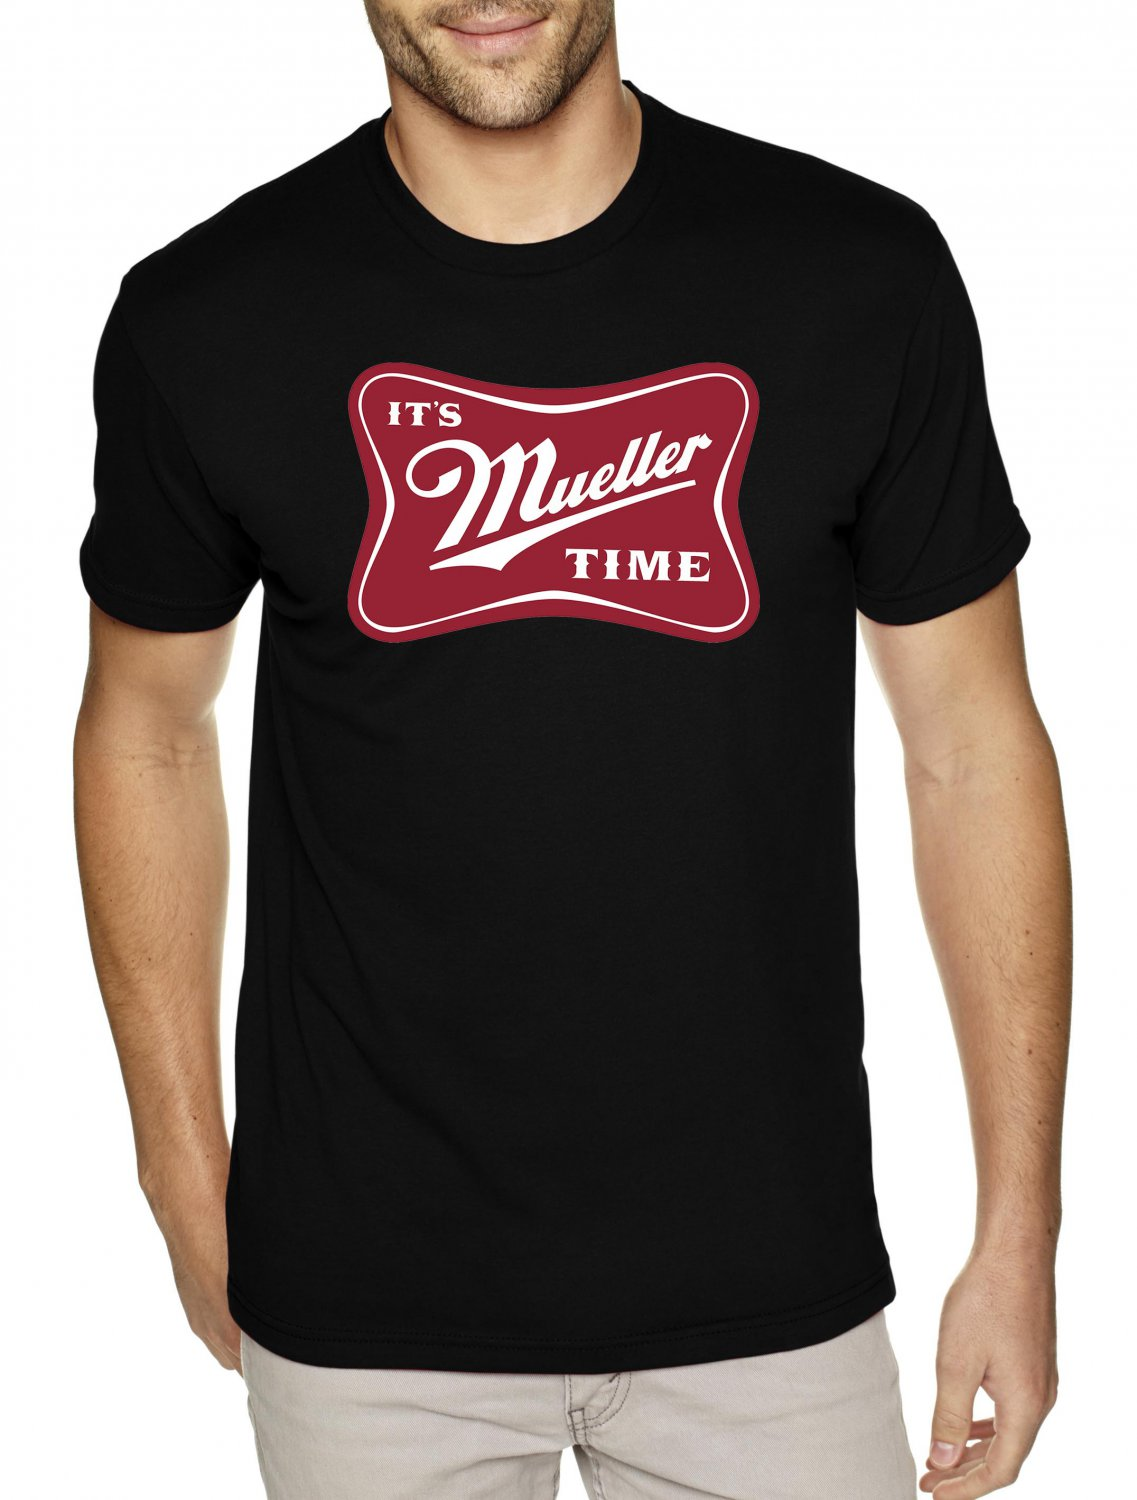 IT'S MUELLER TIME shirt - Premium Sueded Shirt SIZE S